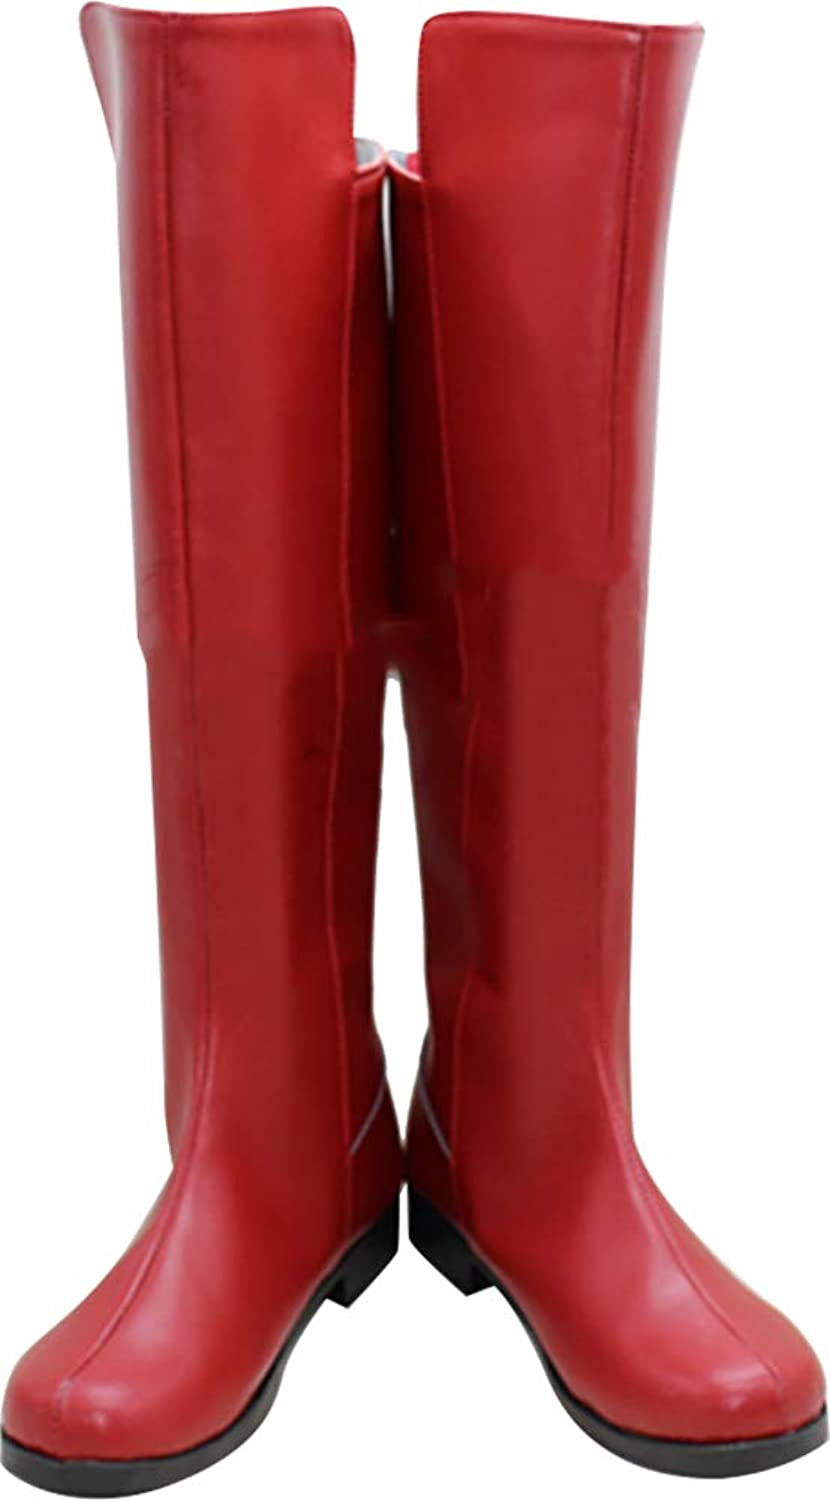 Whirl Cosplay Boots shoes for Vocaloid Meiko